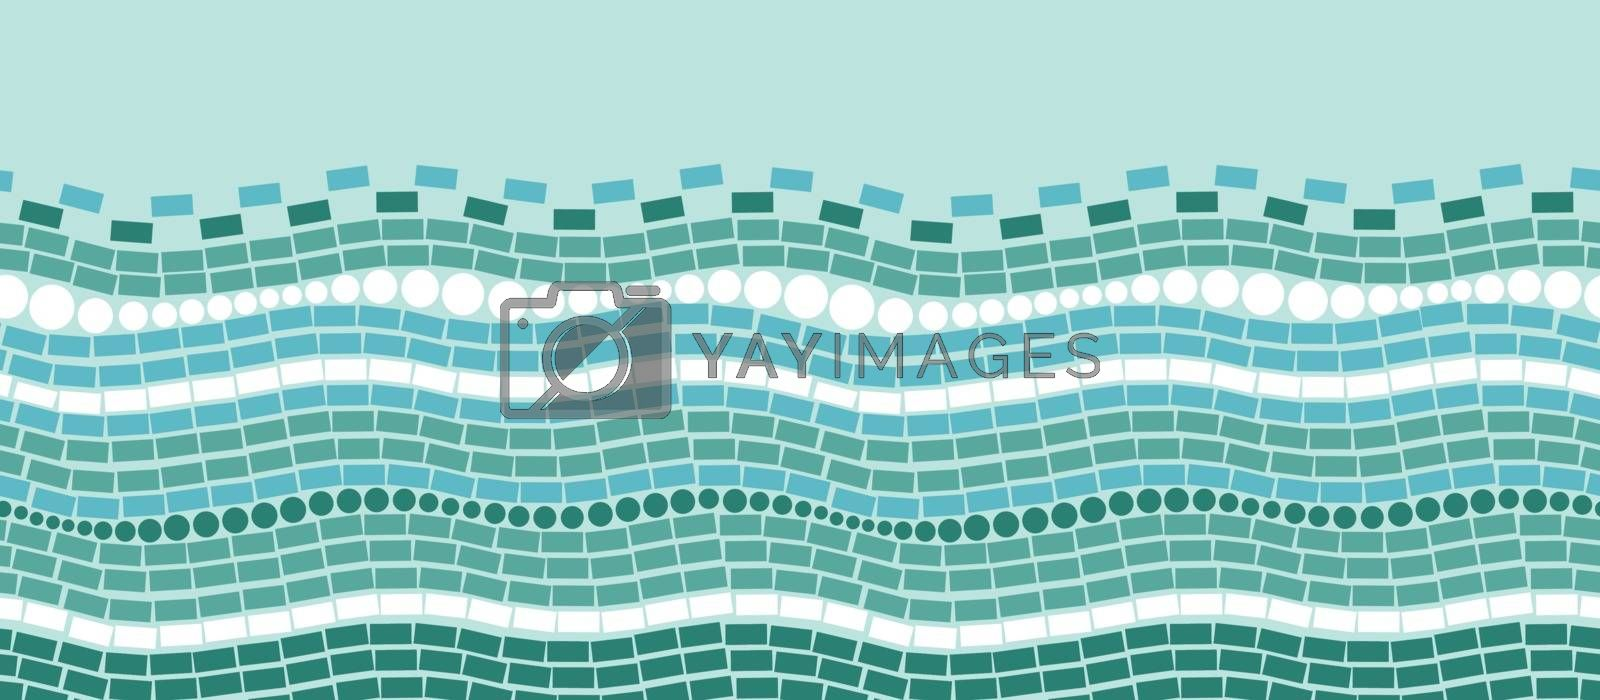 Vector Abstract ice chrystals texture horizontal seamless ornament pattern background with many blue triangular shapes